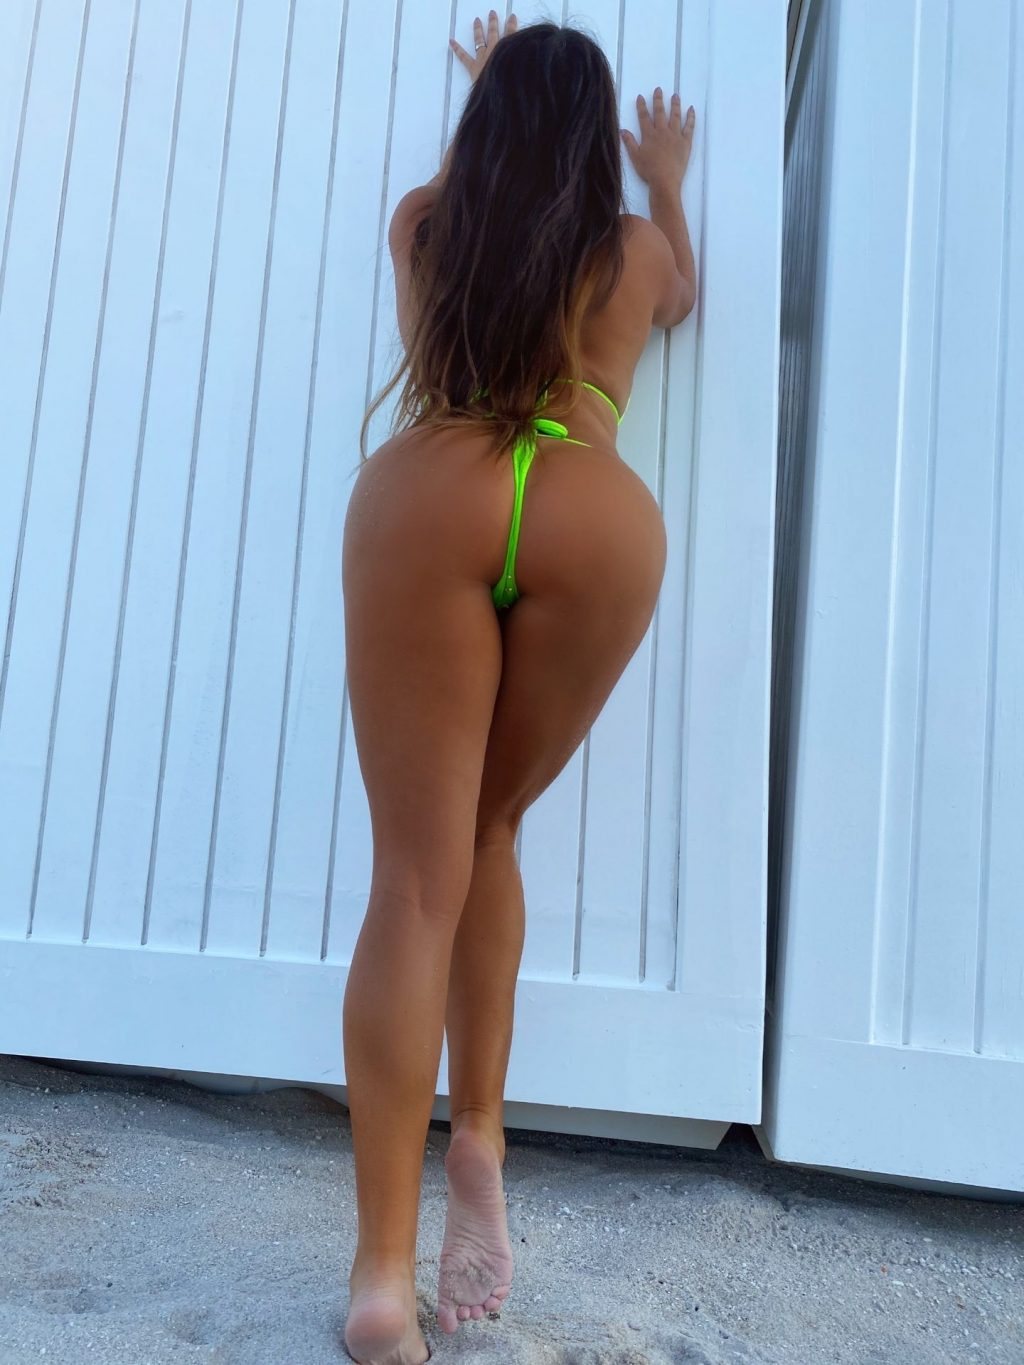 Claudia Romani Poses in a Neon Green Bling Bikini on Miami Beach (12 Photos)